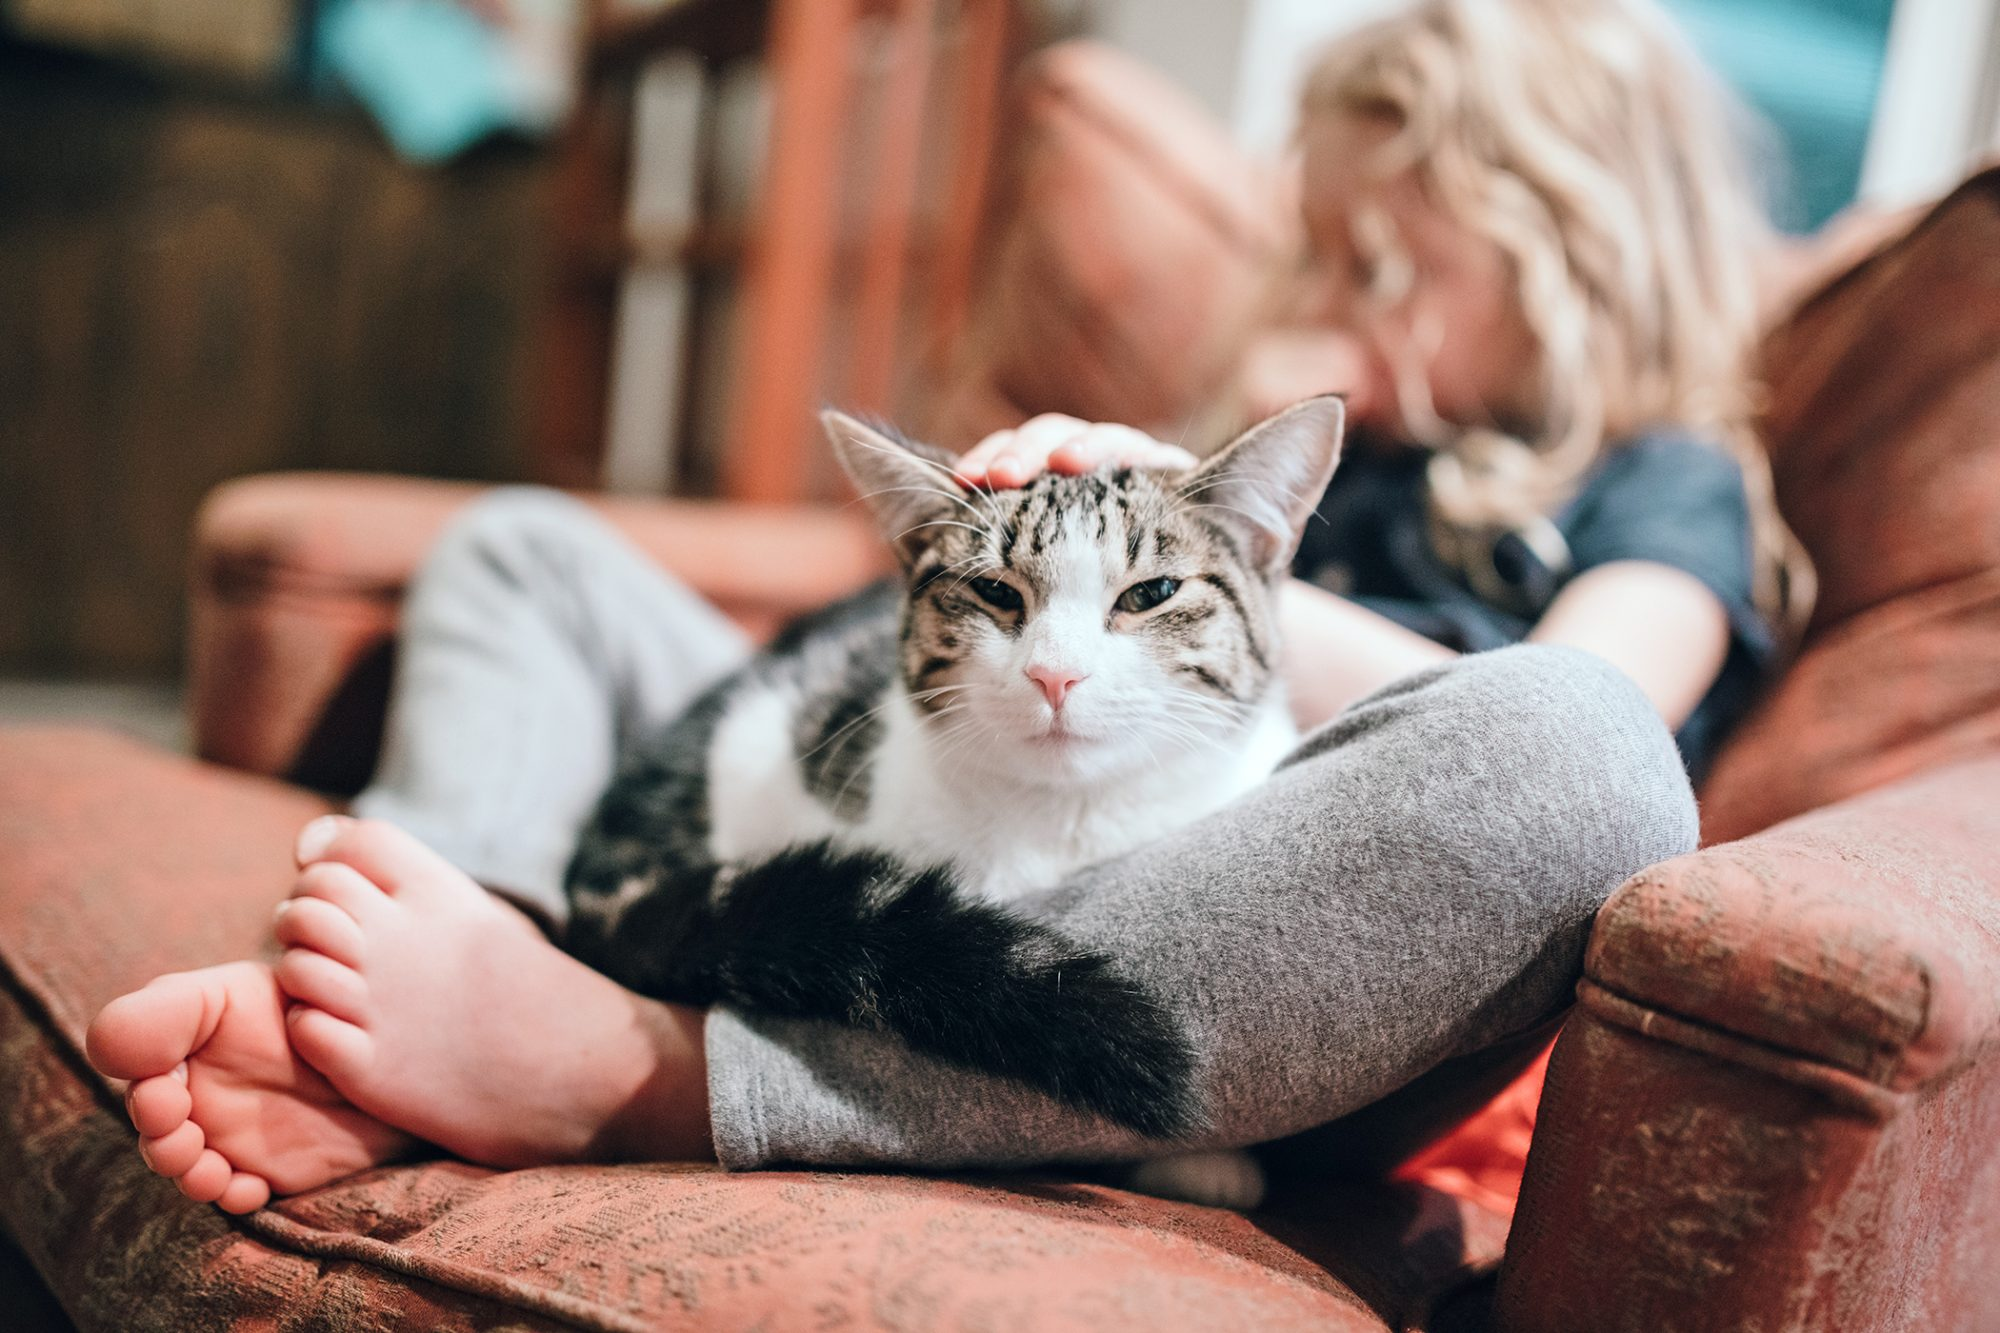 cat with liver disease being pet while sitting in between a child's legs